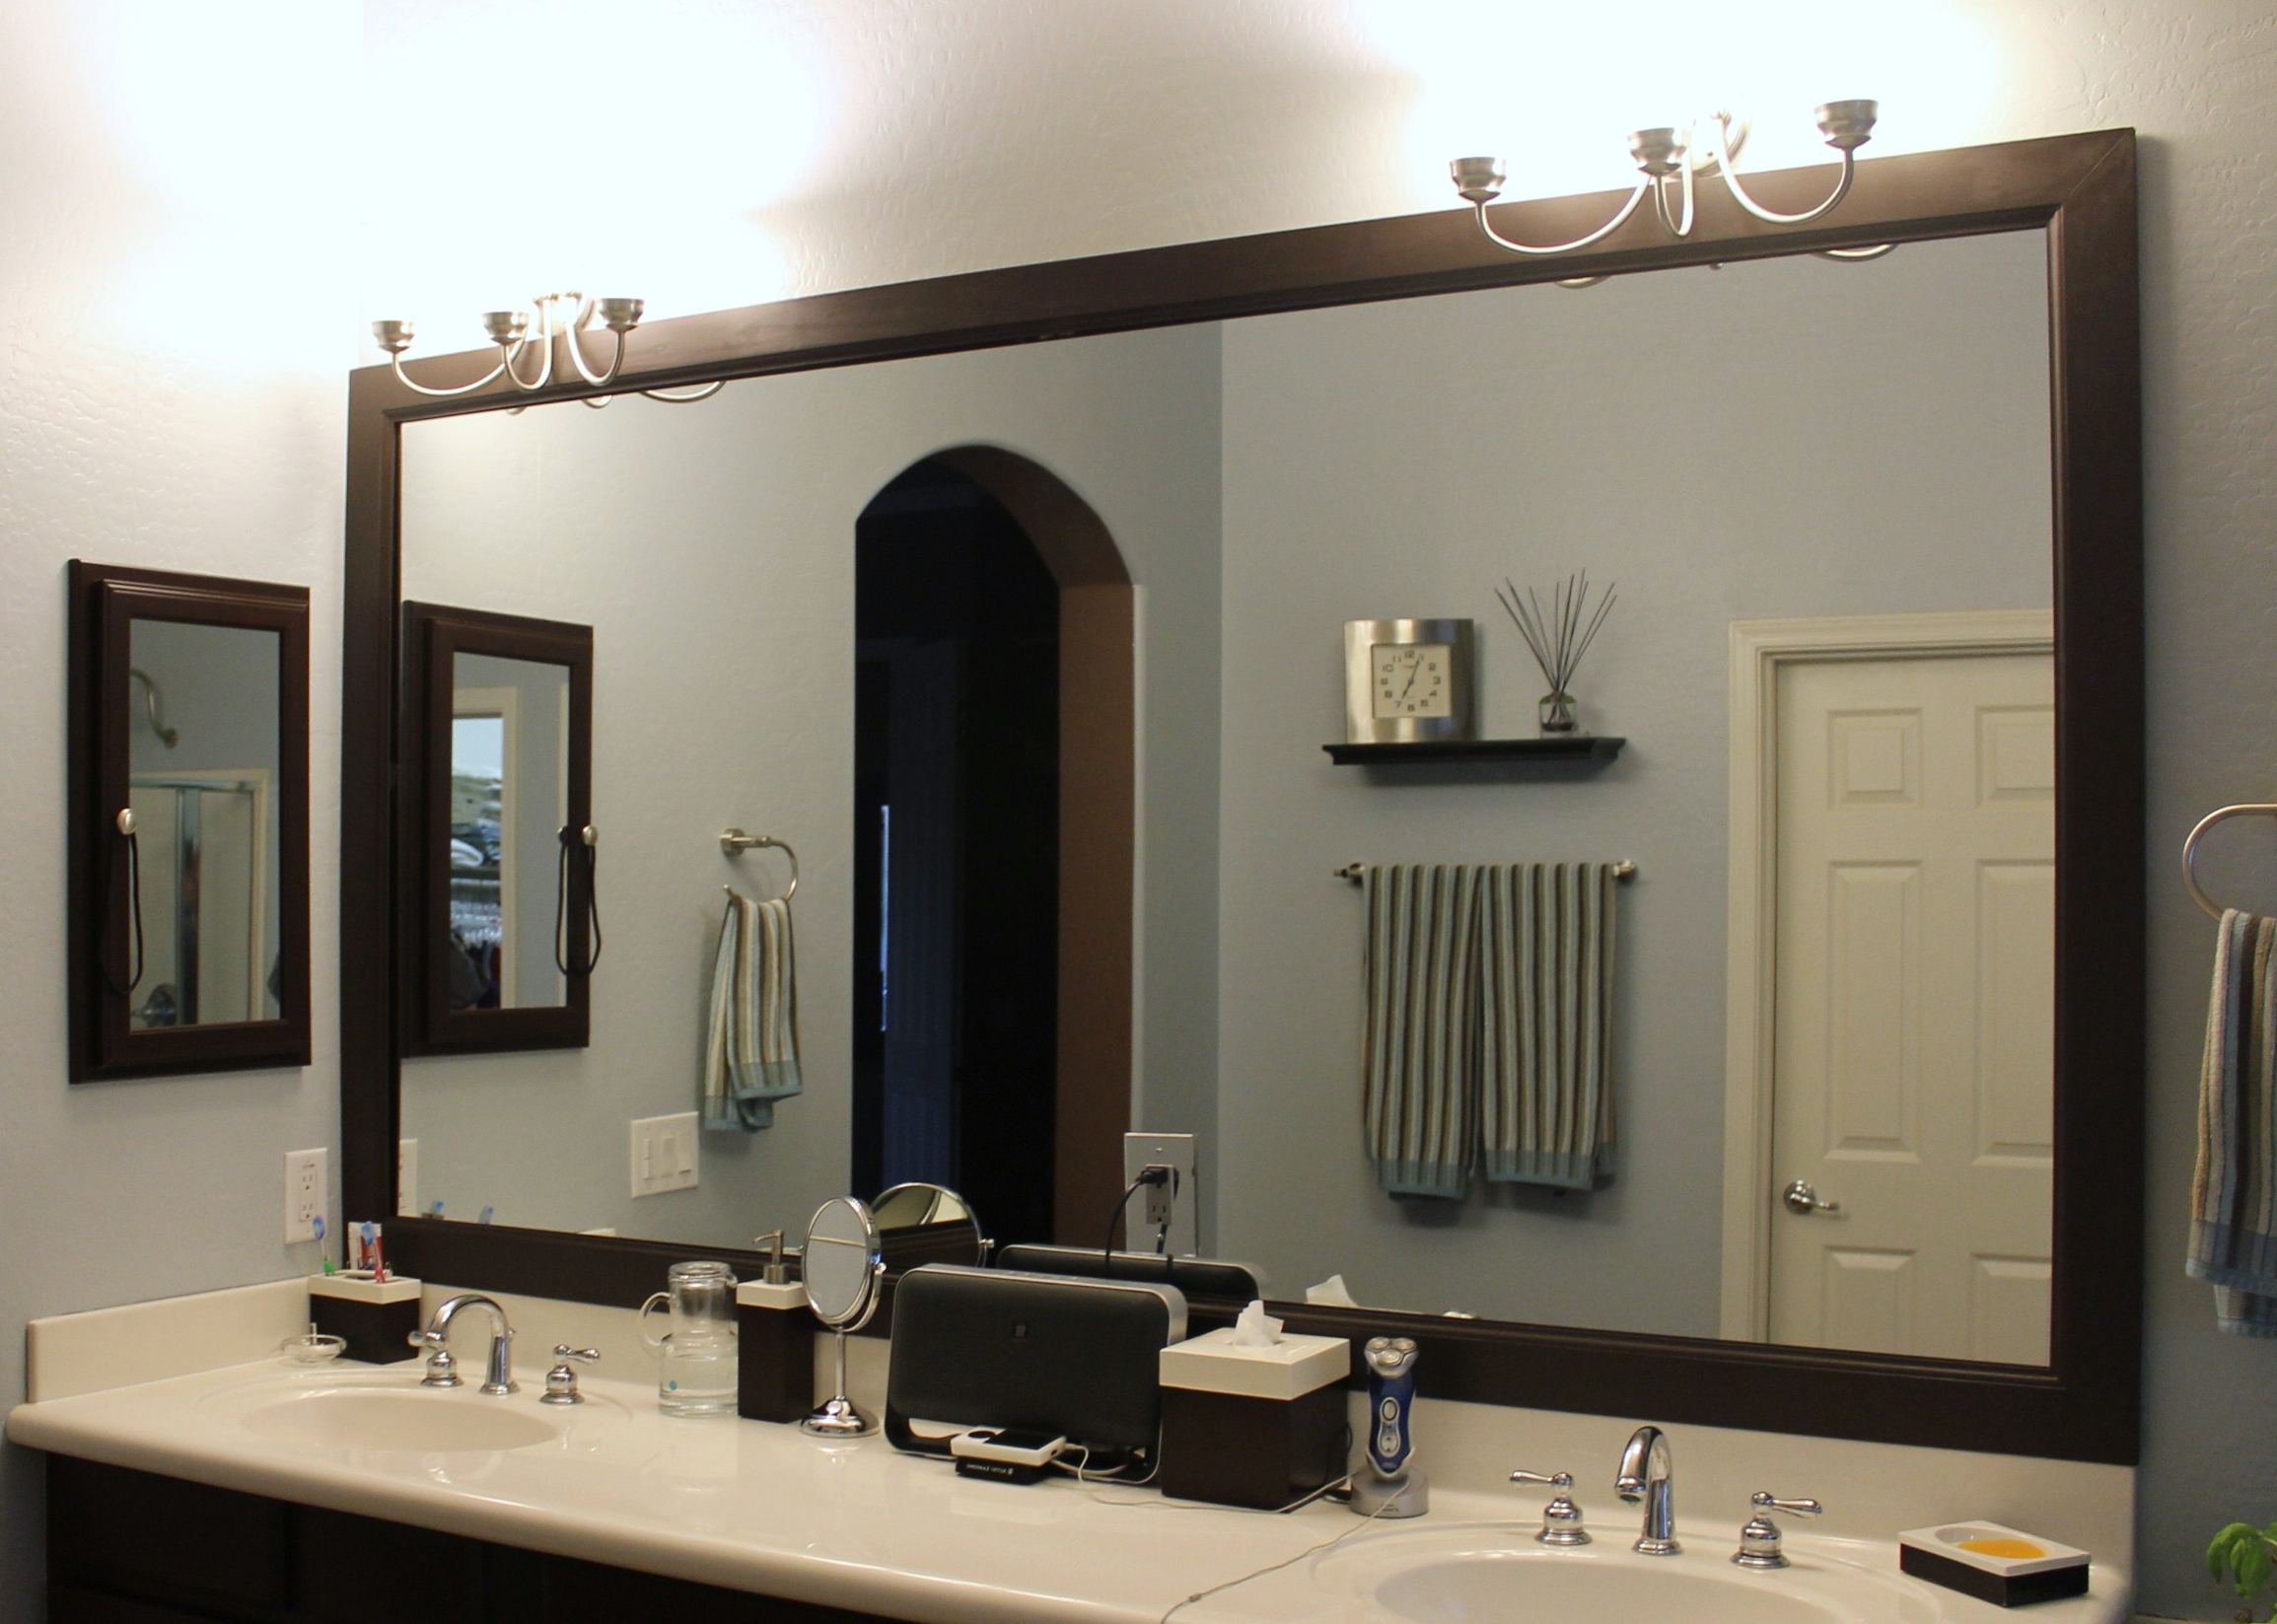 Frames For Bathroom Wall Mirrors Pertaining To Most Recent Delightful Framed Mirrors For Bathrooms Ideas – Kiakiyo (View 8 of 20)